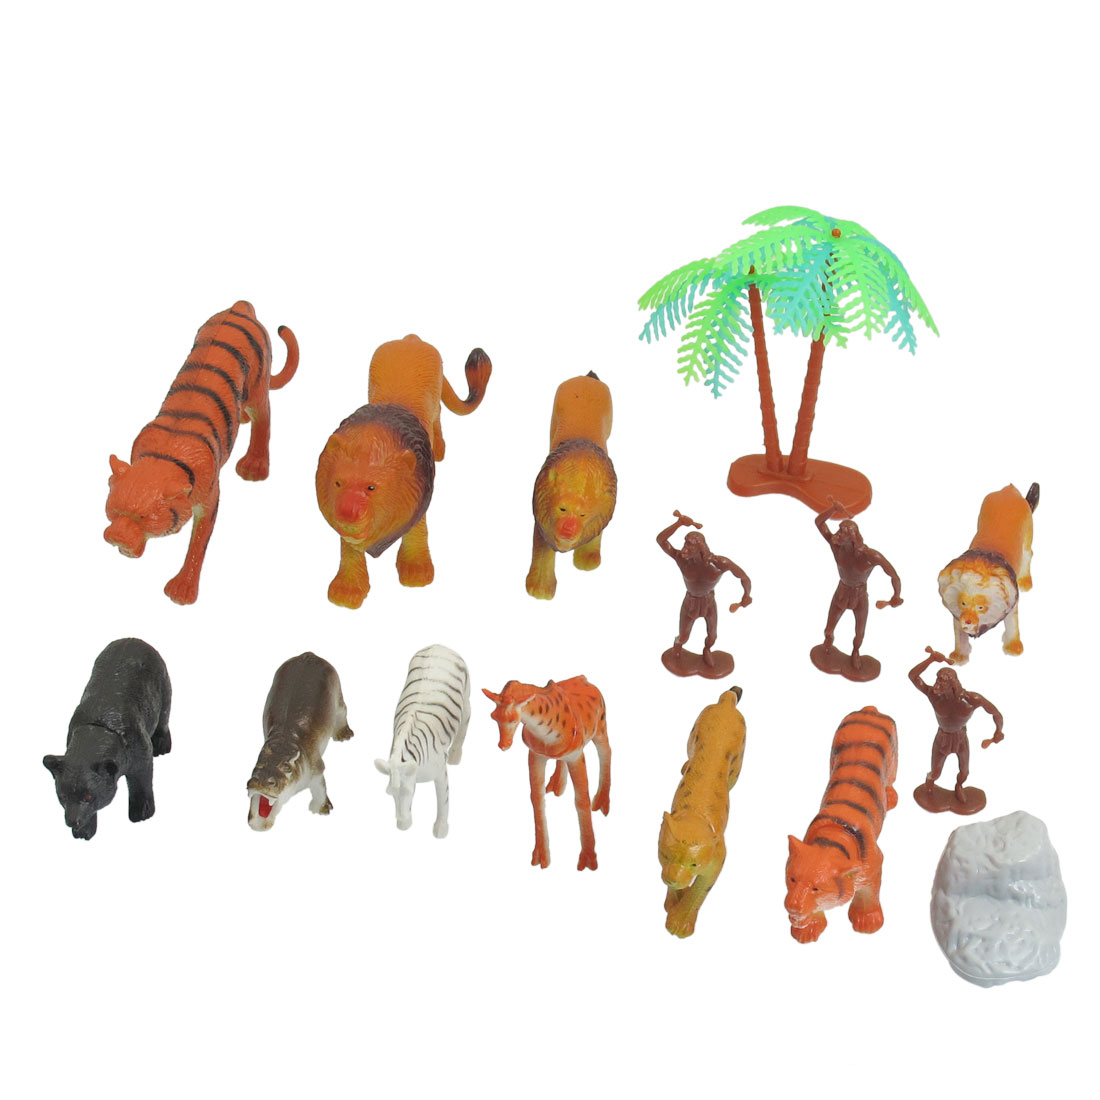 15 in 1 Vividly Plastic Lion Tiger Giraffe Leopard Hippo Toy